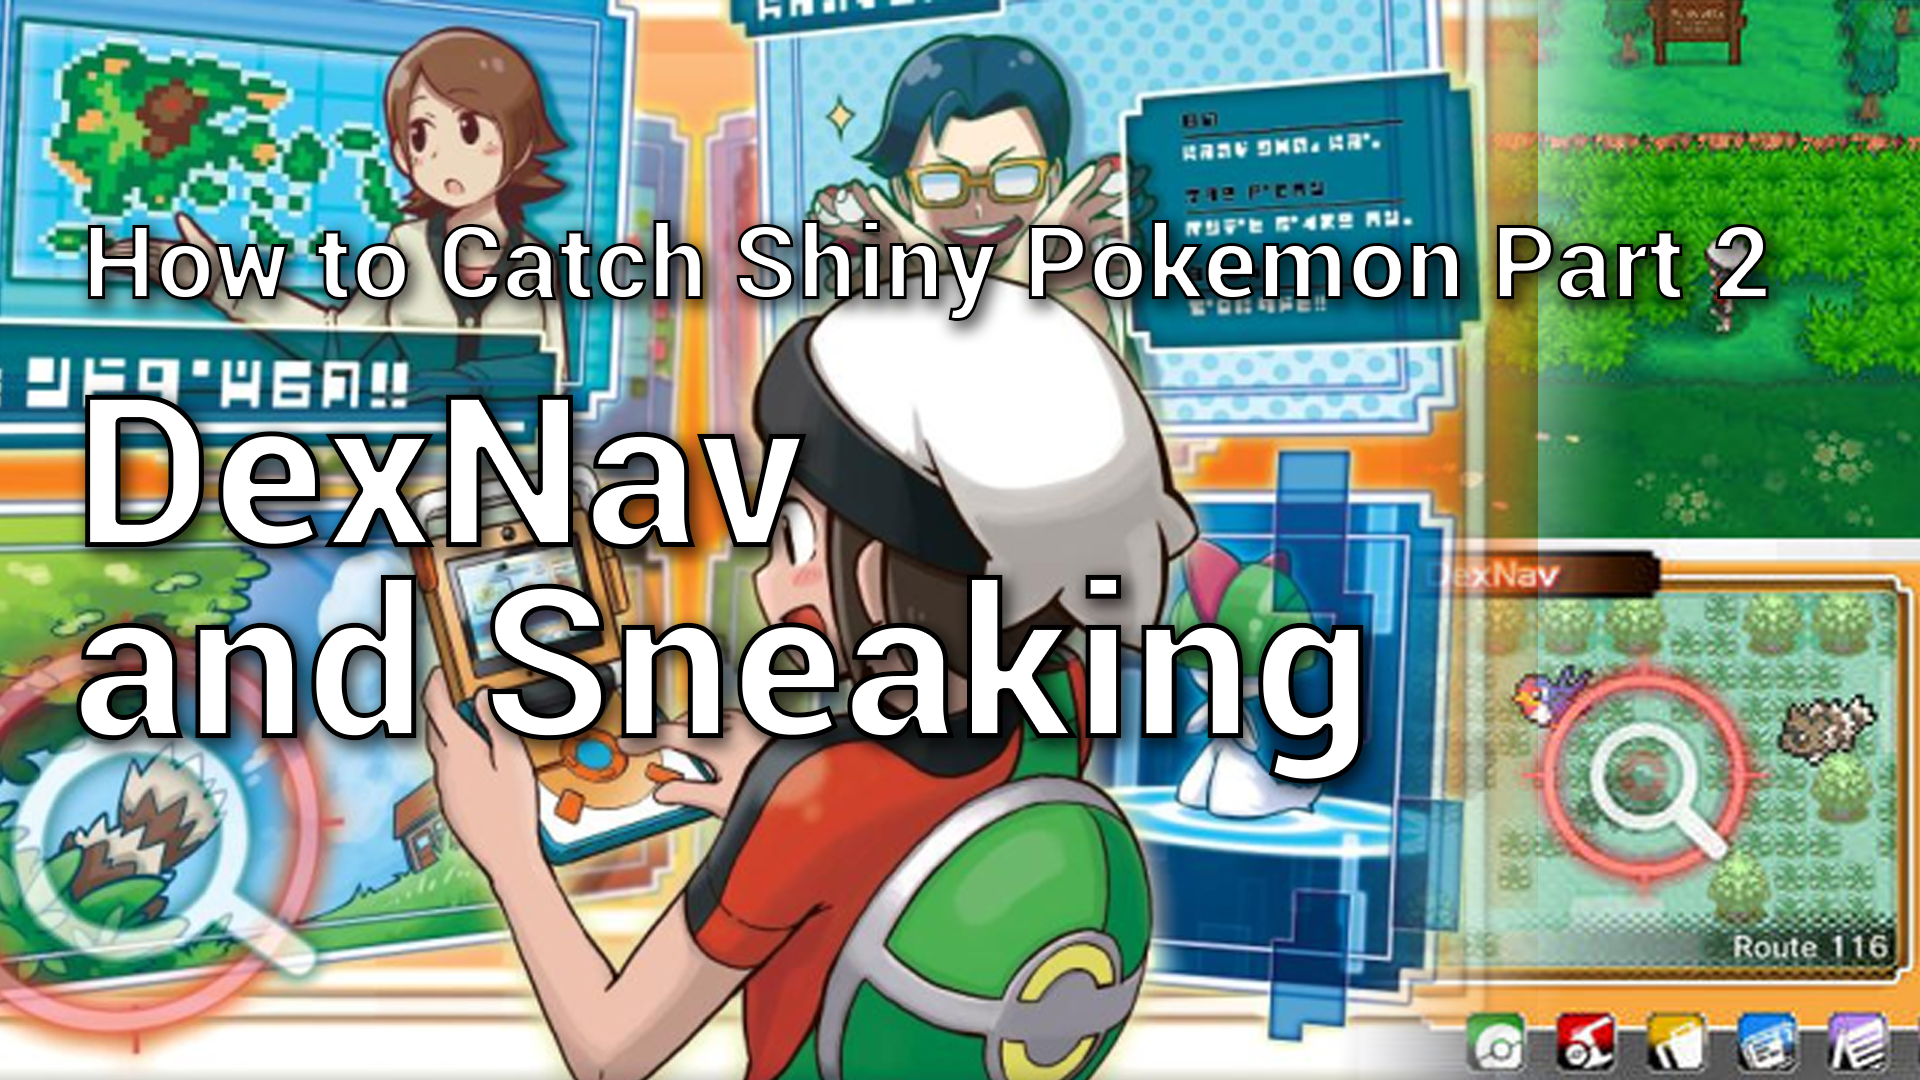 How to catch shiny Pokemon in Omega Ruby and Alpha Sapphire